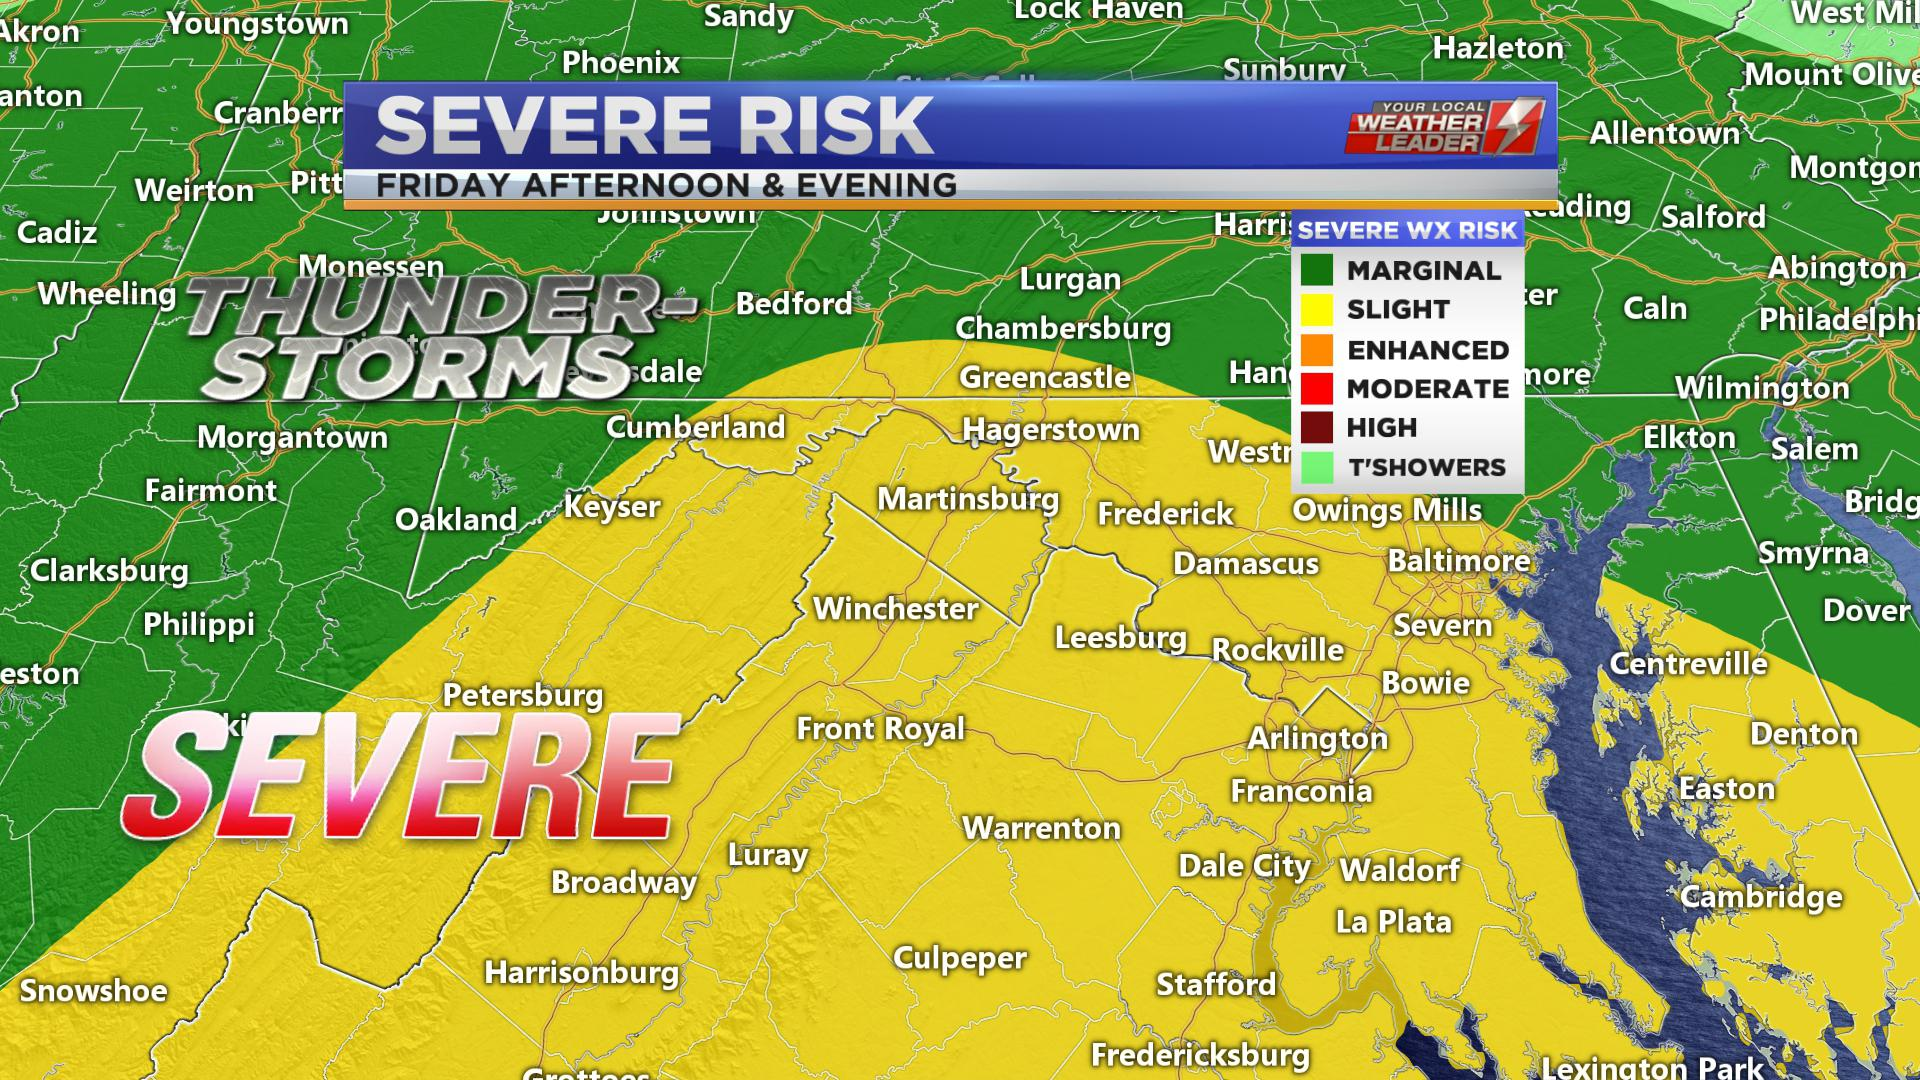 SEVERE WEATHER for Friday 19 April 2019